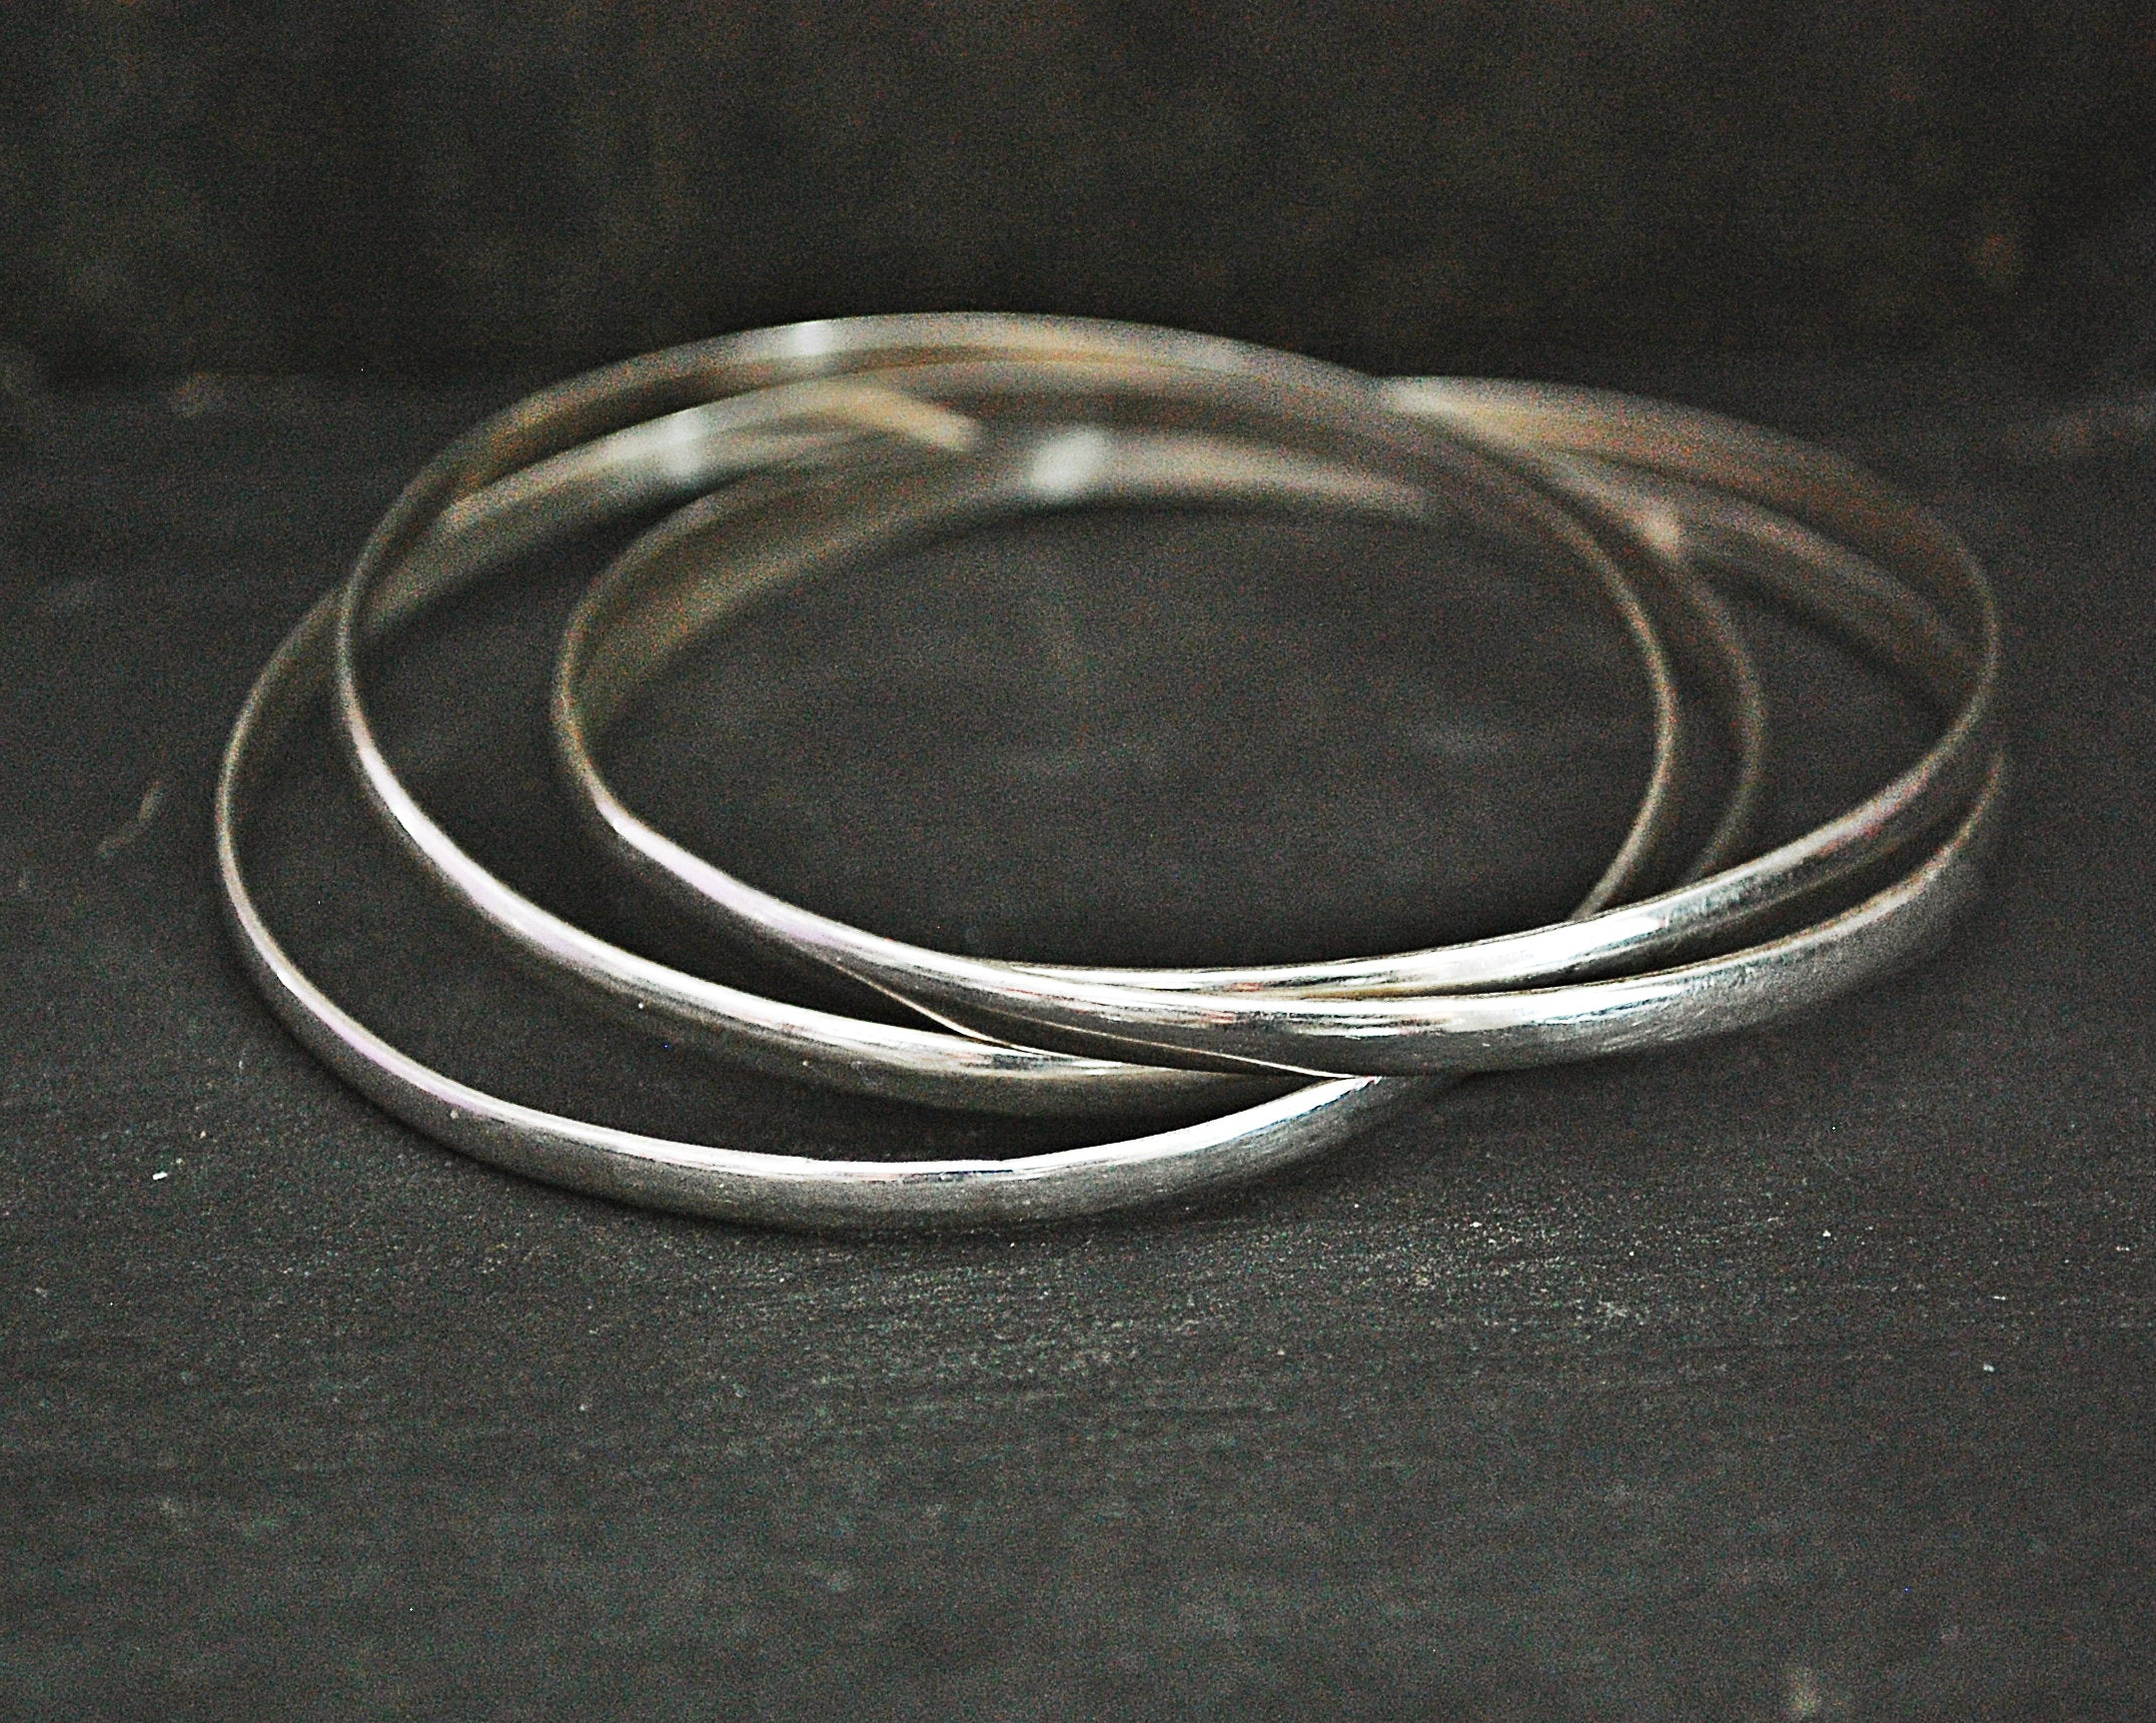 Interlocked Sterling Silver Bangle Bracelets